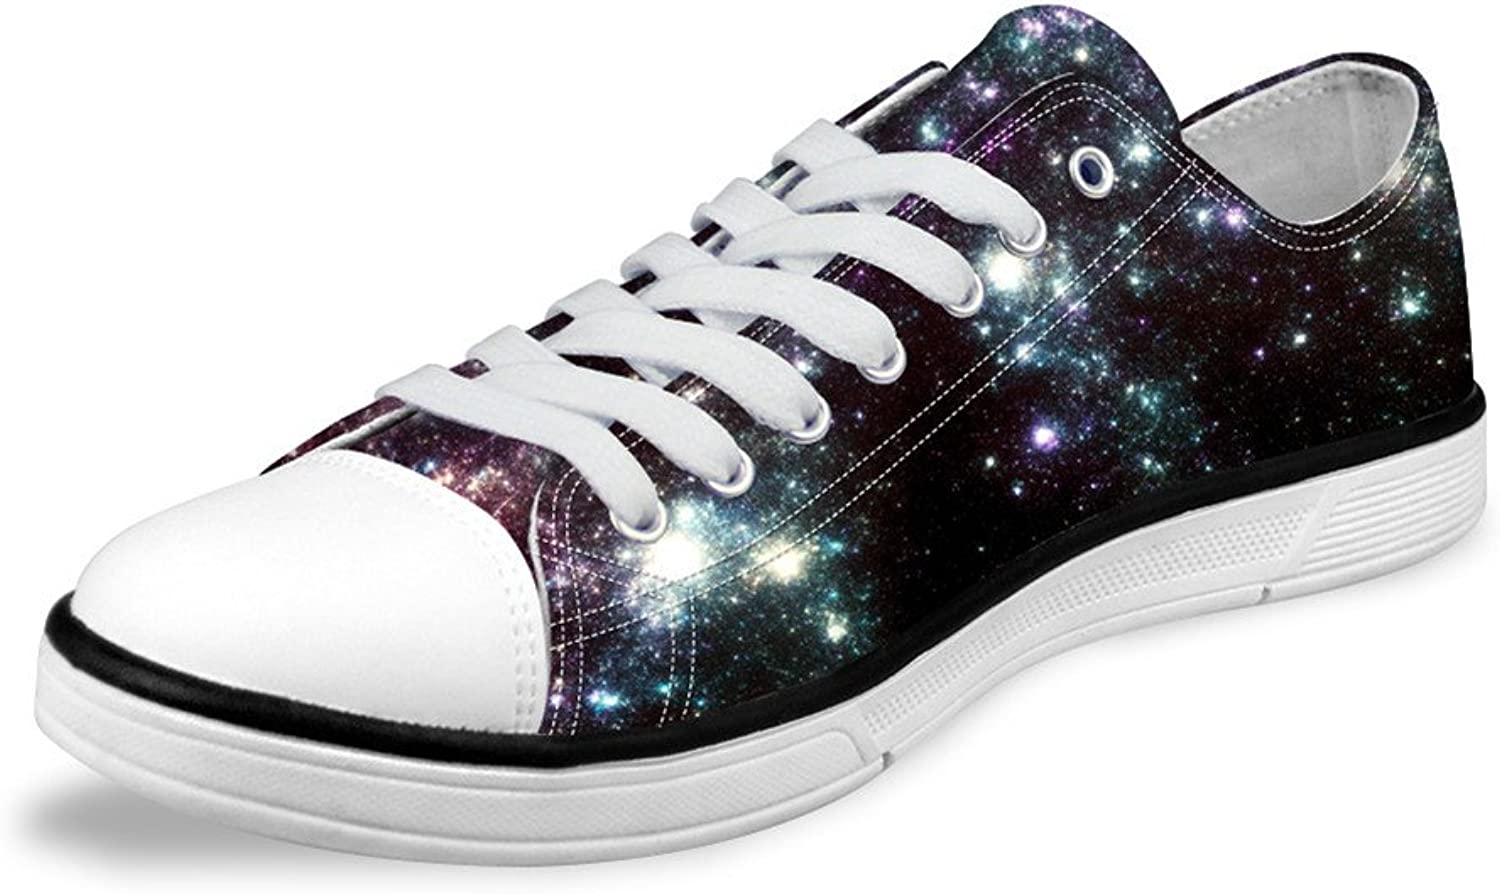 FOR U DESIGNS Casual Dark Galaxy Lo-top Lace Up Canvas Casual Flat Women Sneaker US 11